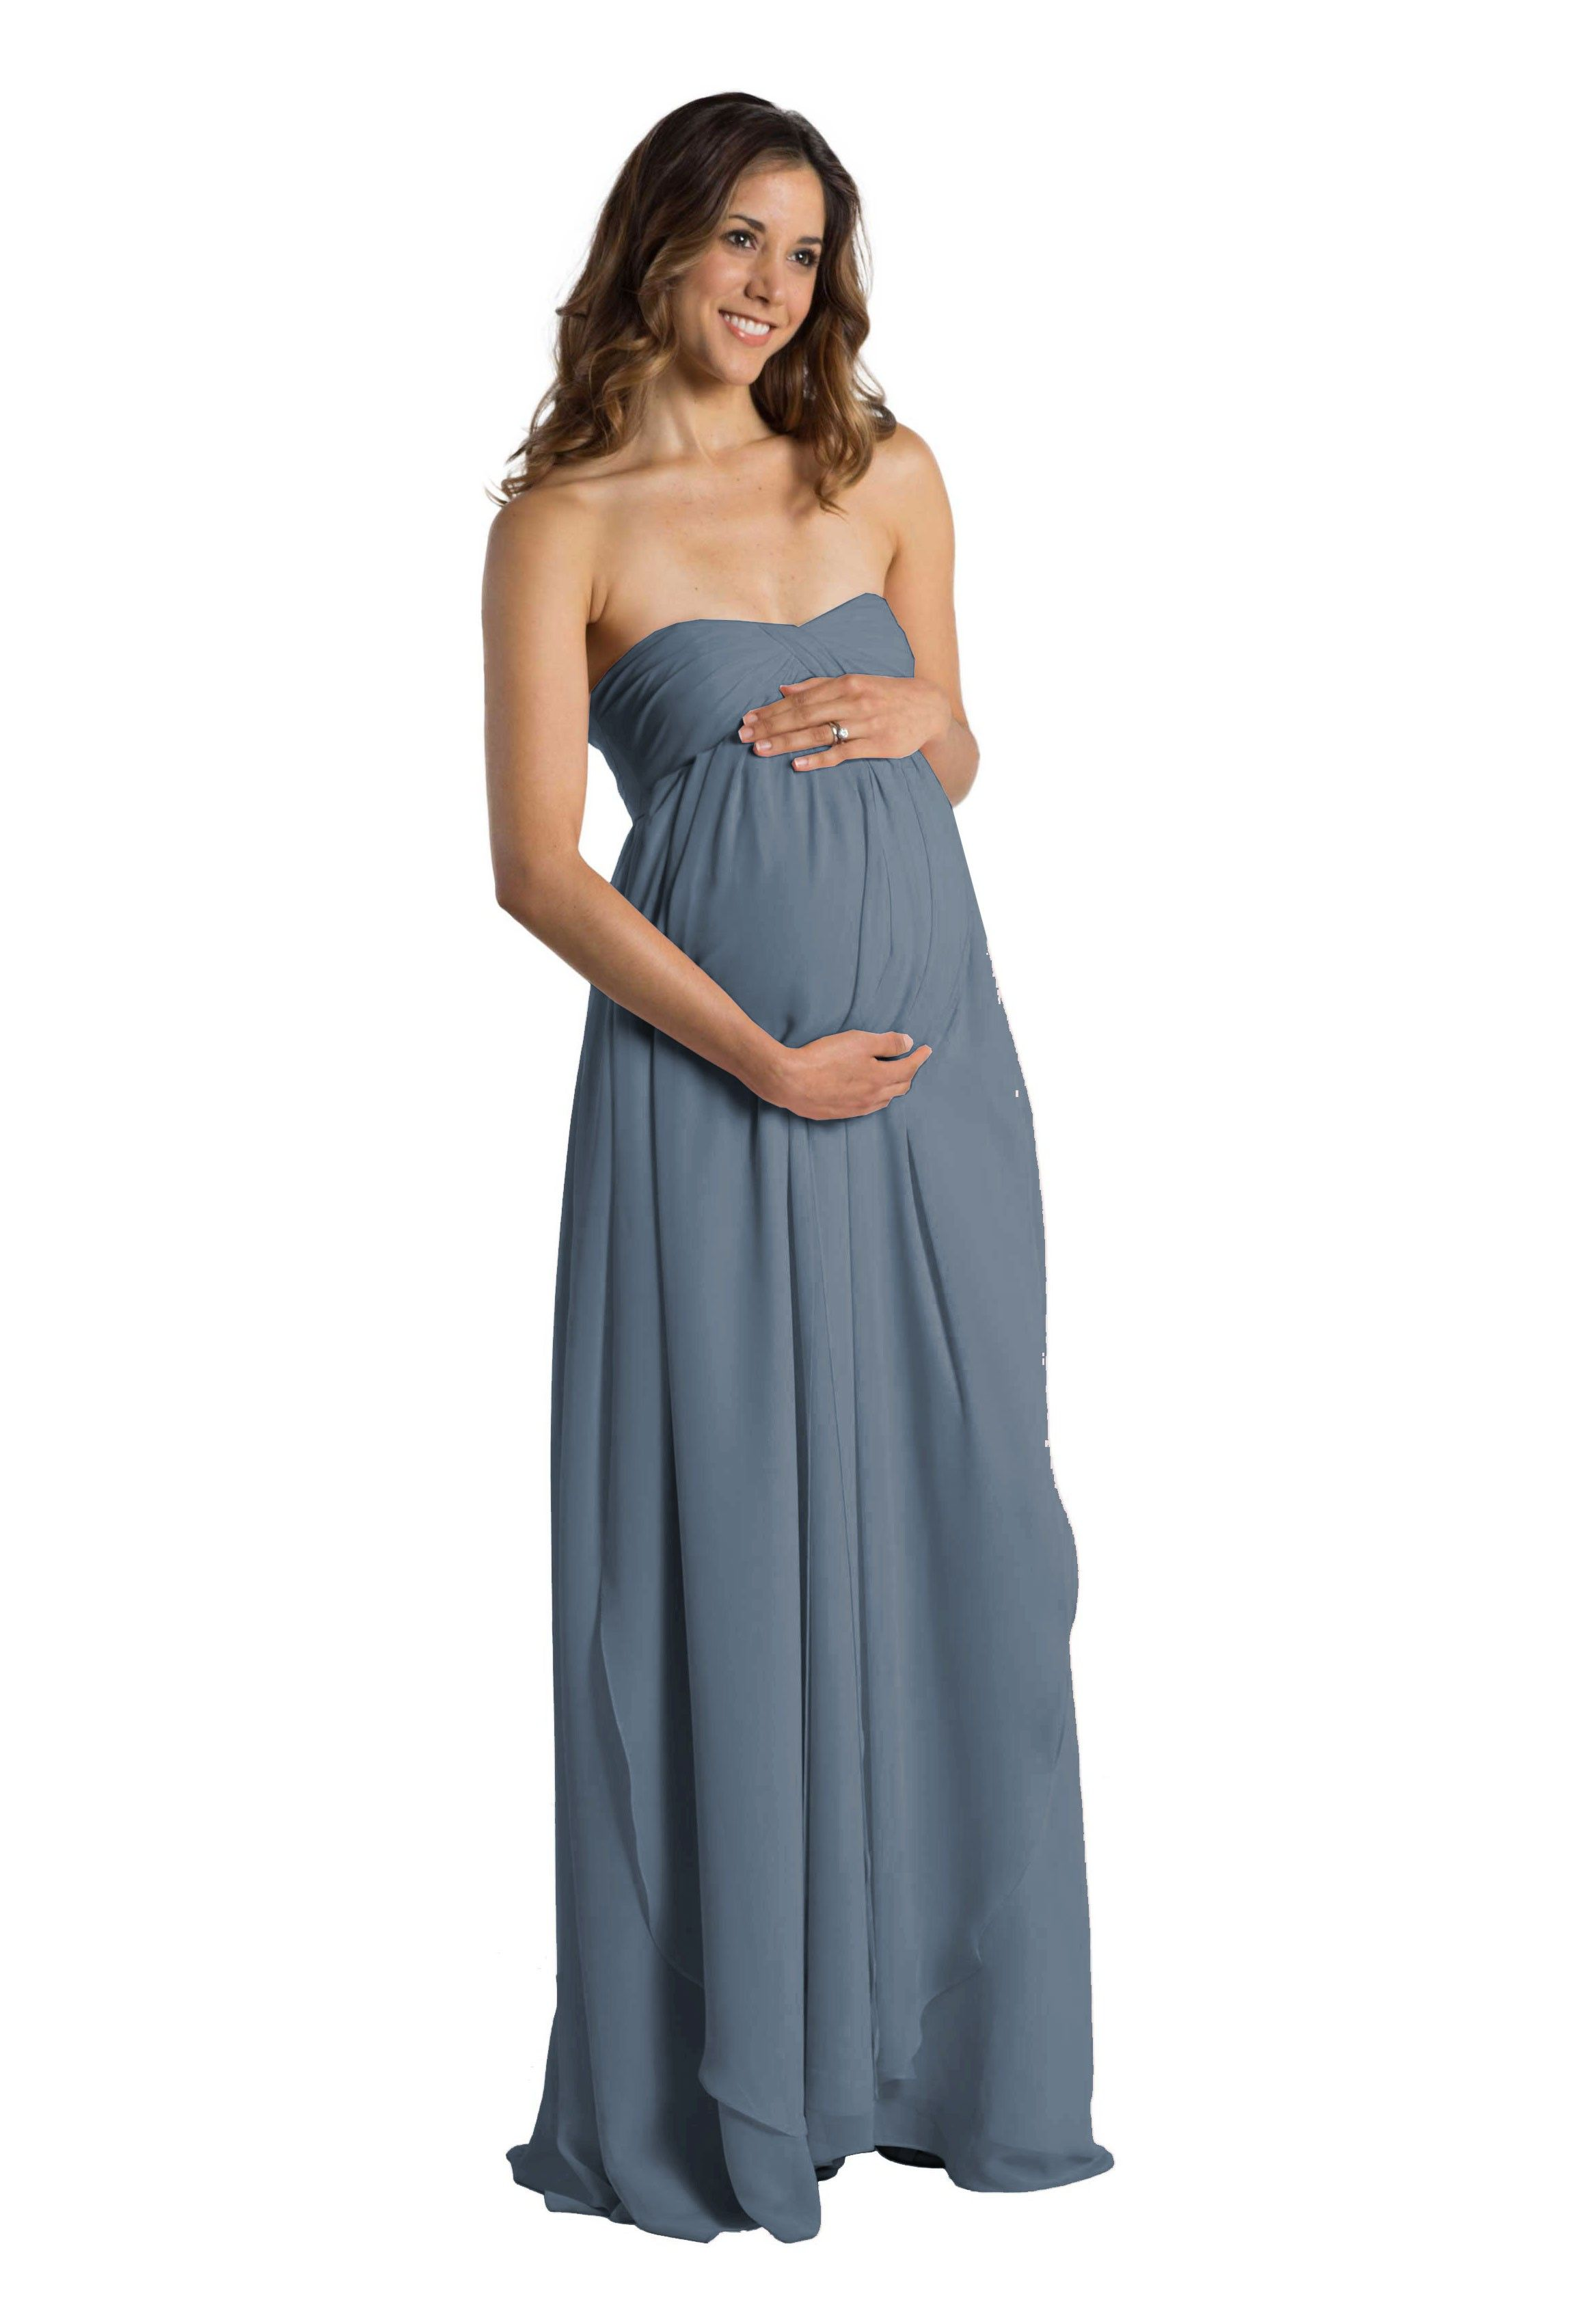 A floor-length convertible maternity bridesmaid gown with flowing ...